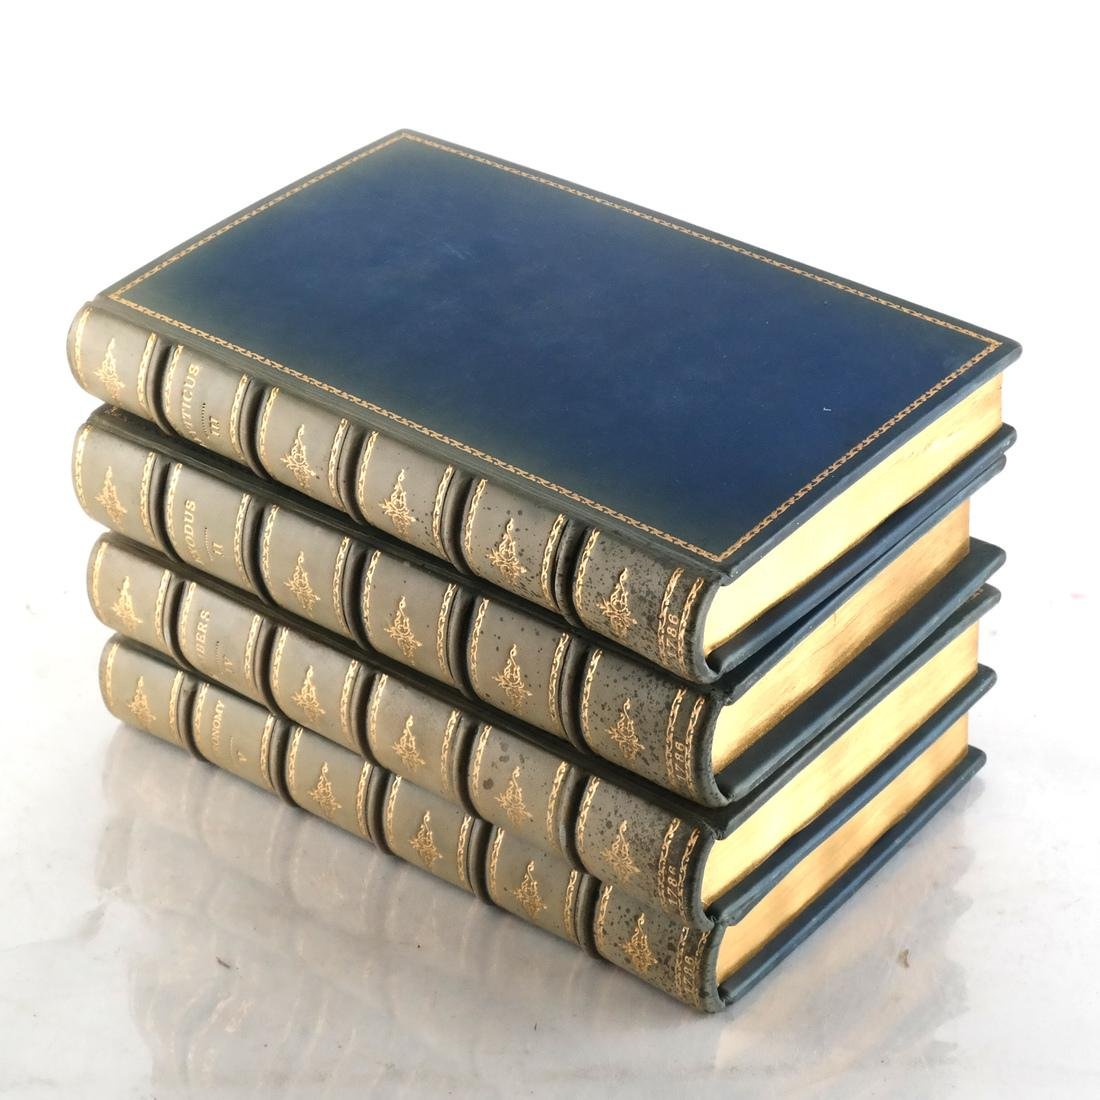 Books: 4 Books of the Bible